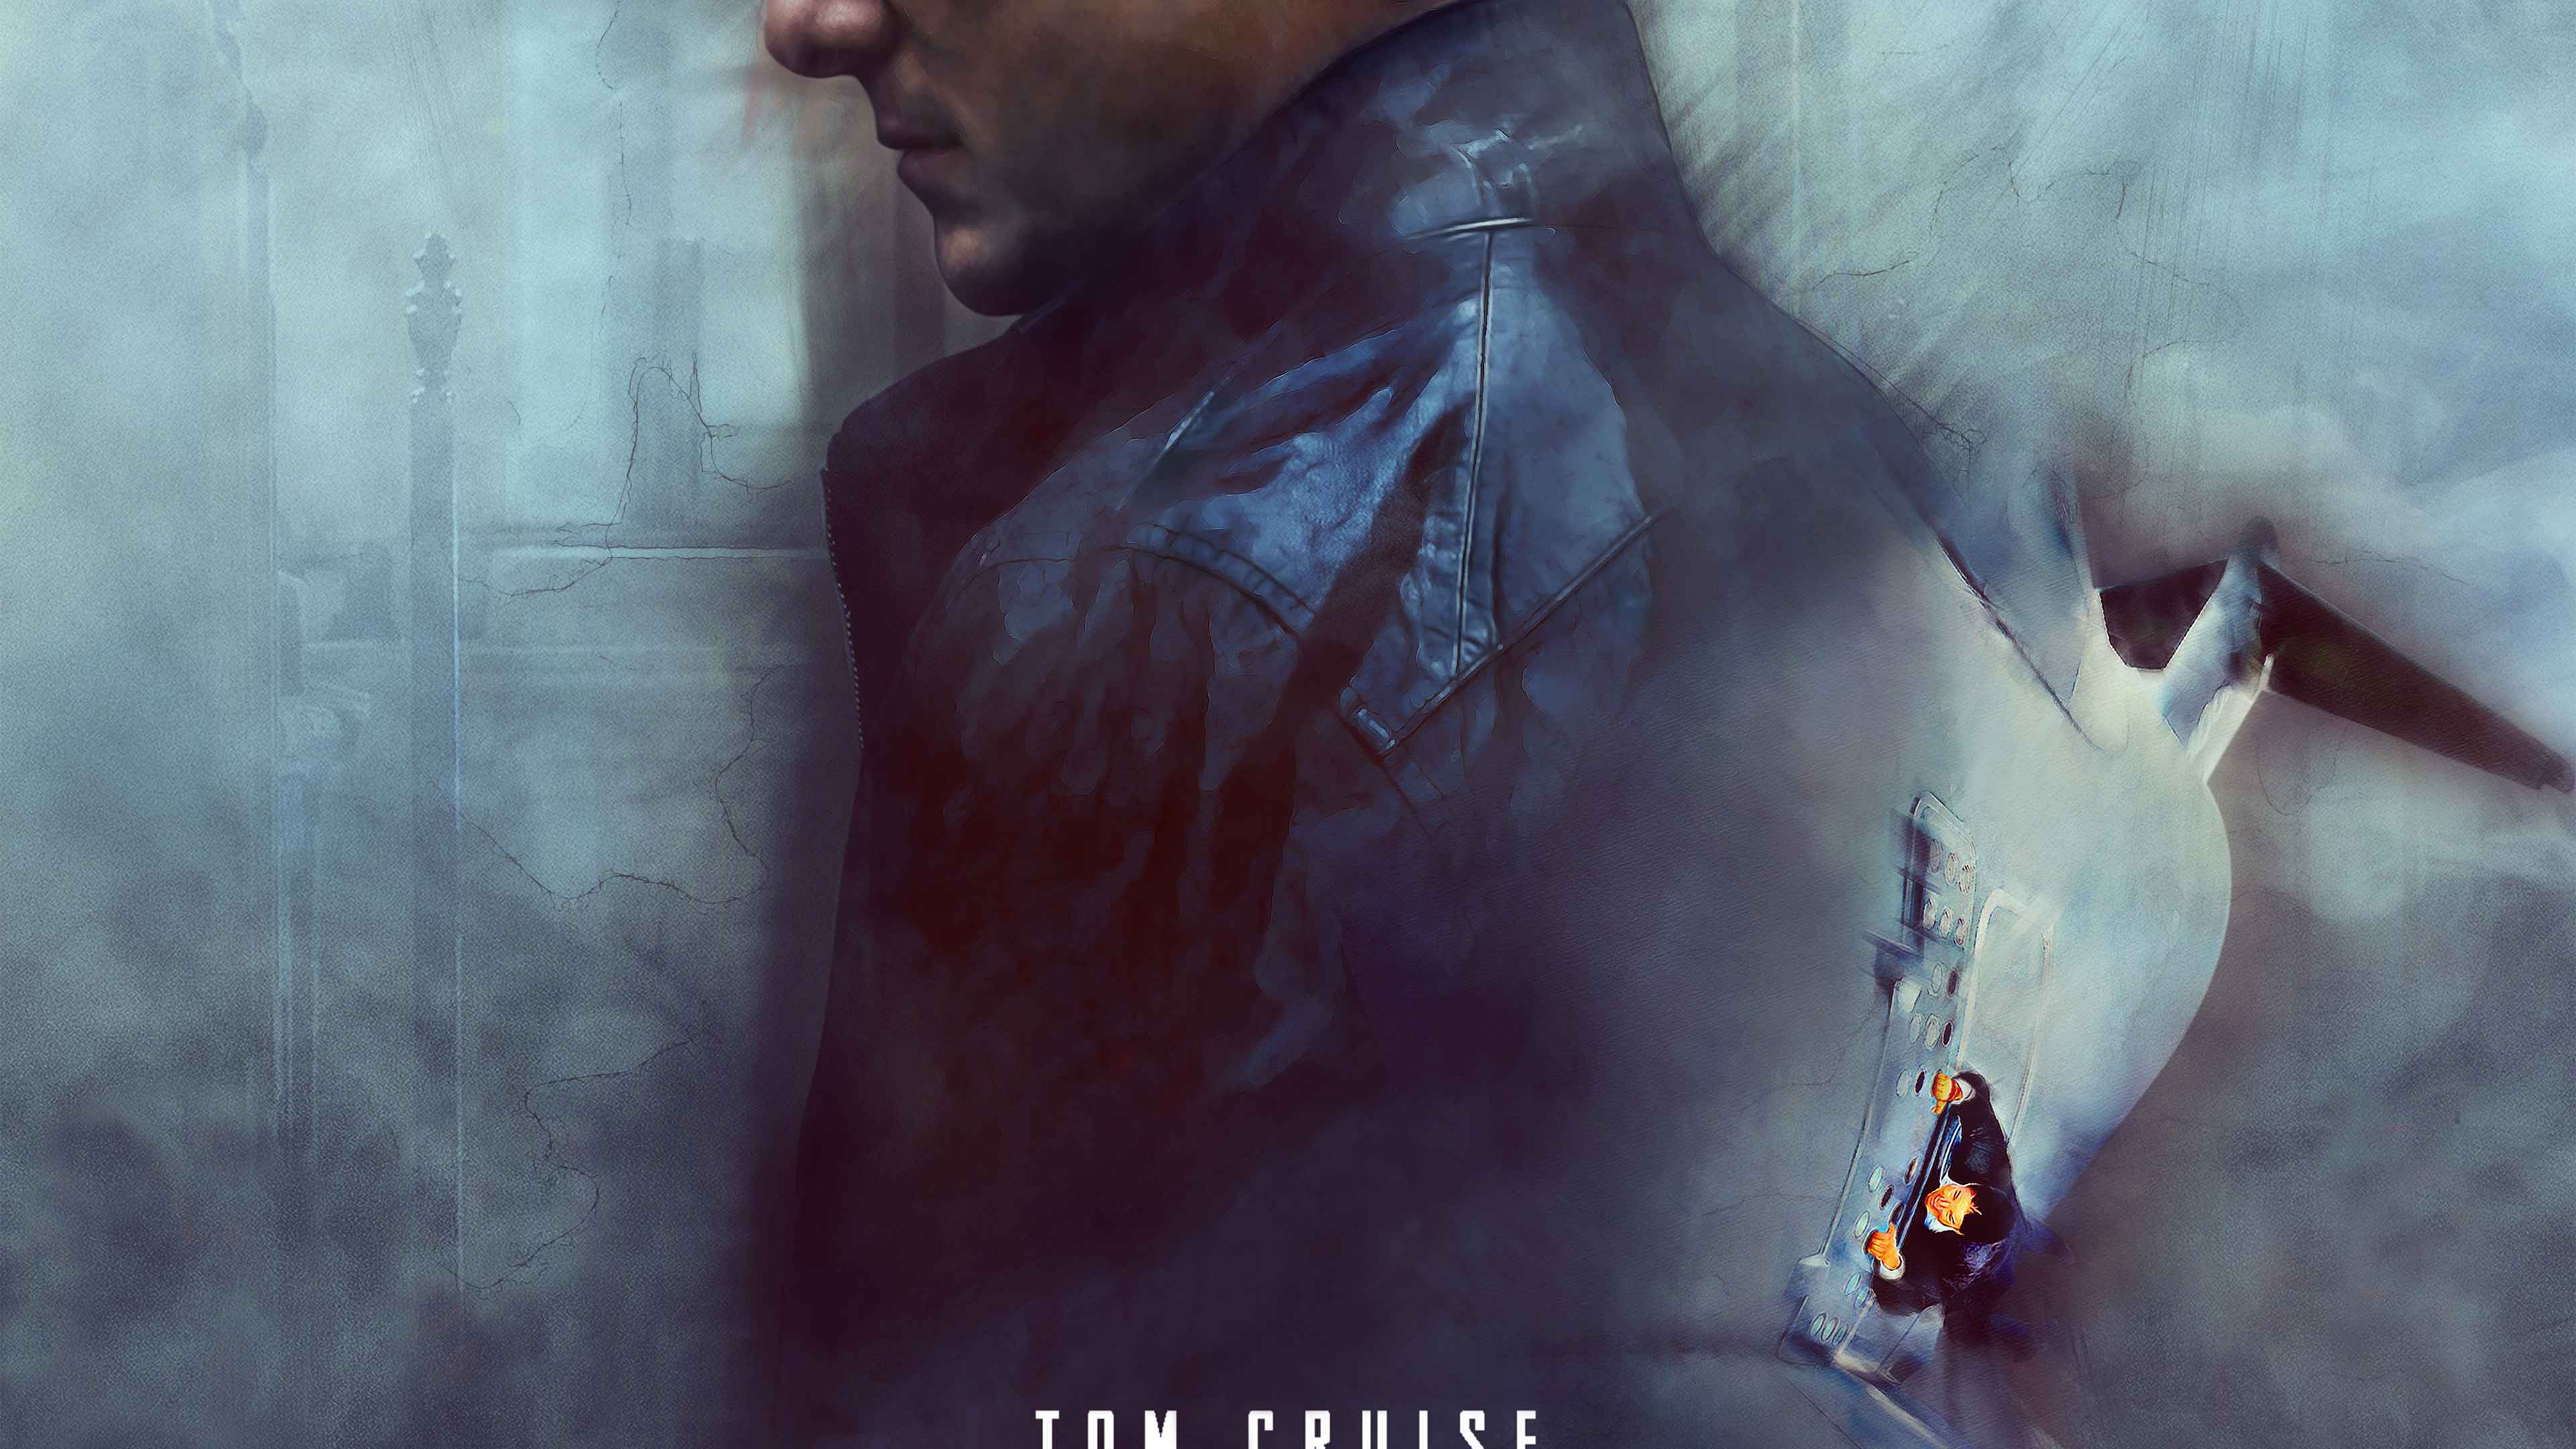 tom cruise essay Directed by cameron crowe with tom cruise, cuba gooding jr, renée zellweger, kelly preston when a sports agent has a moral epiphany and is fired for expressing it, he decides to put his.